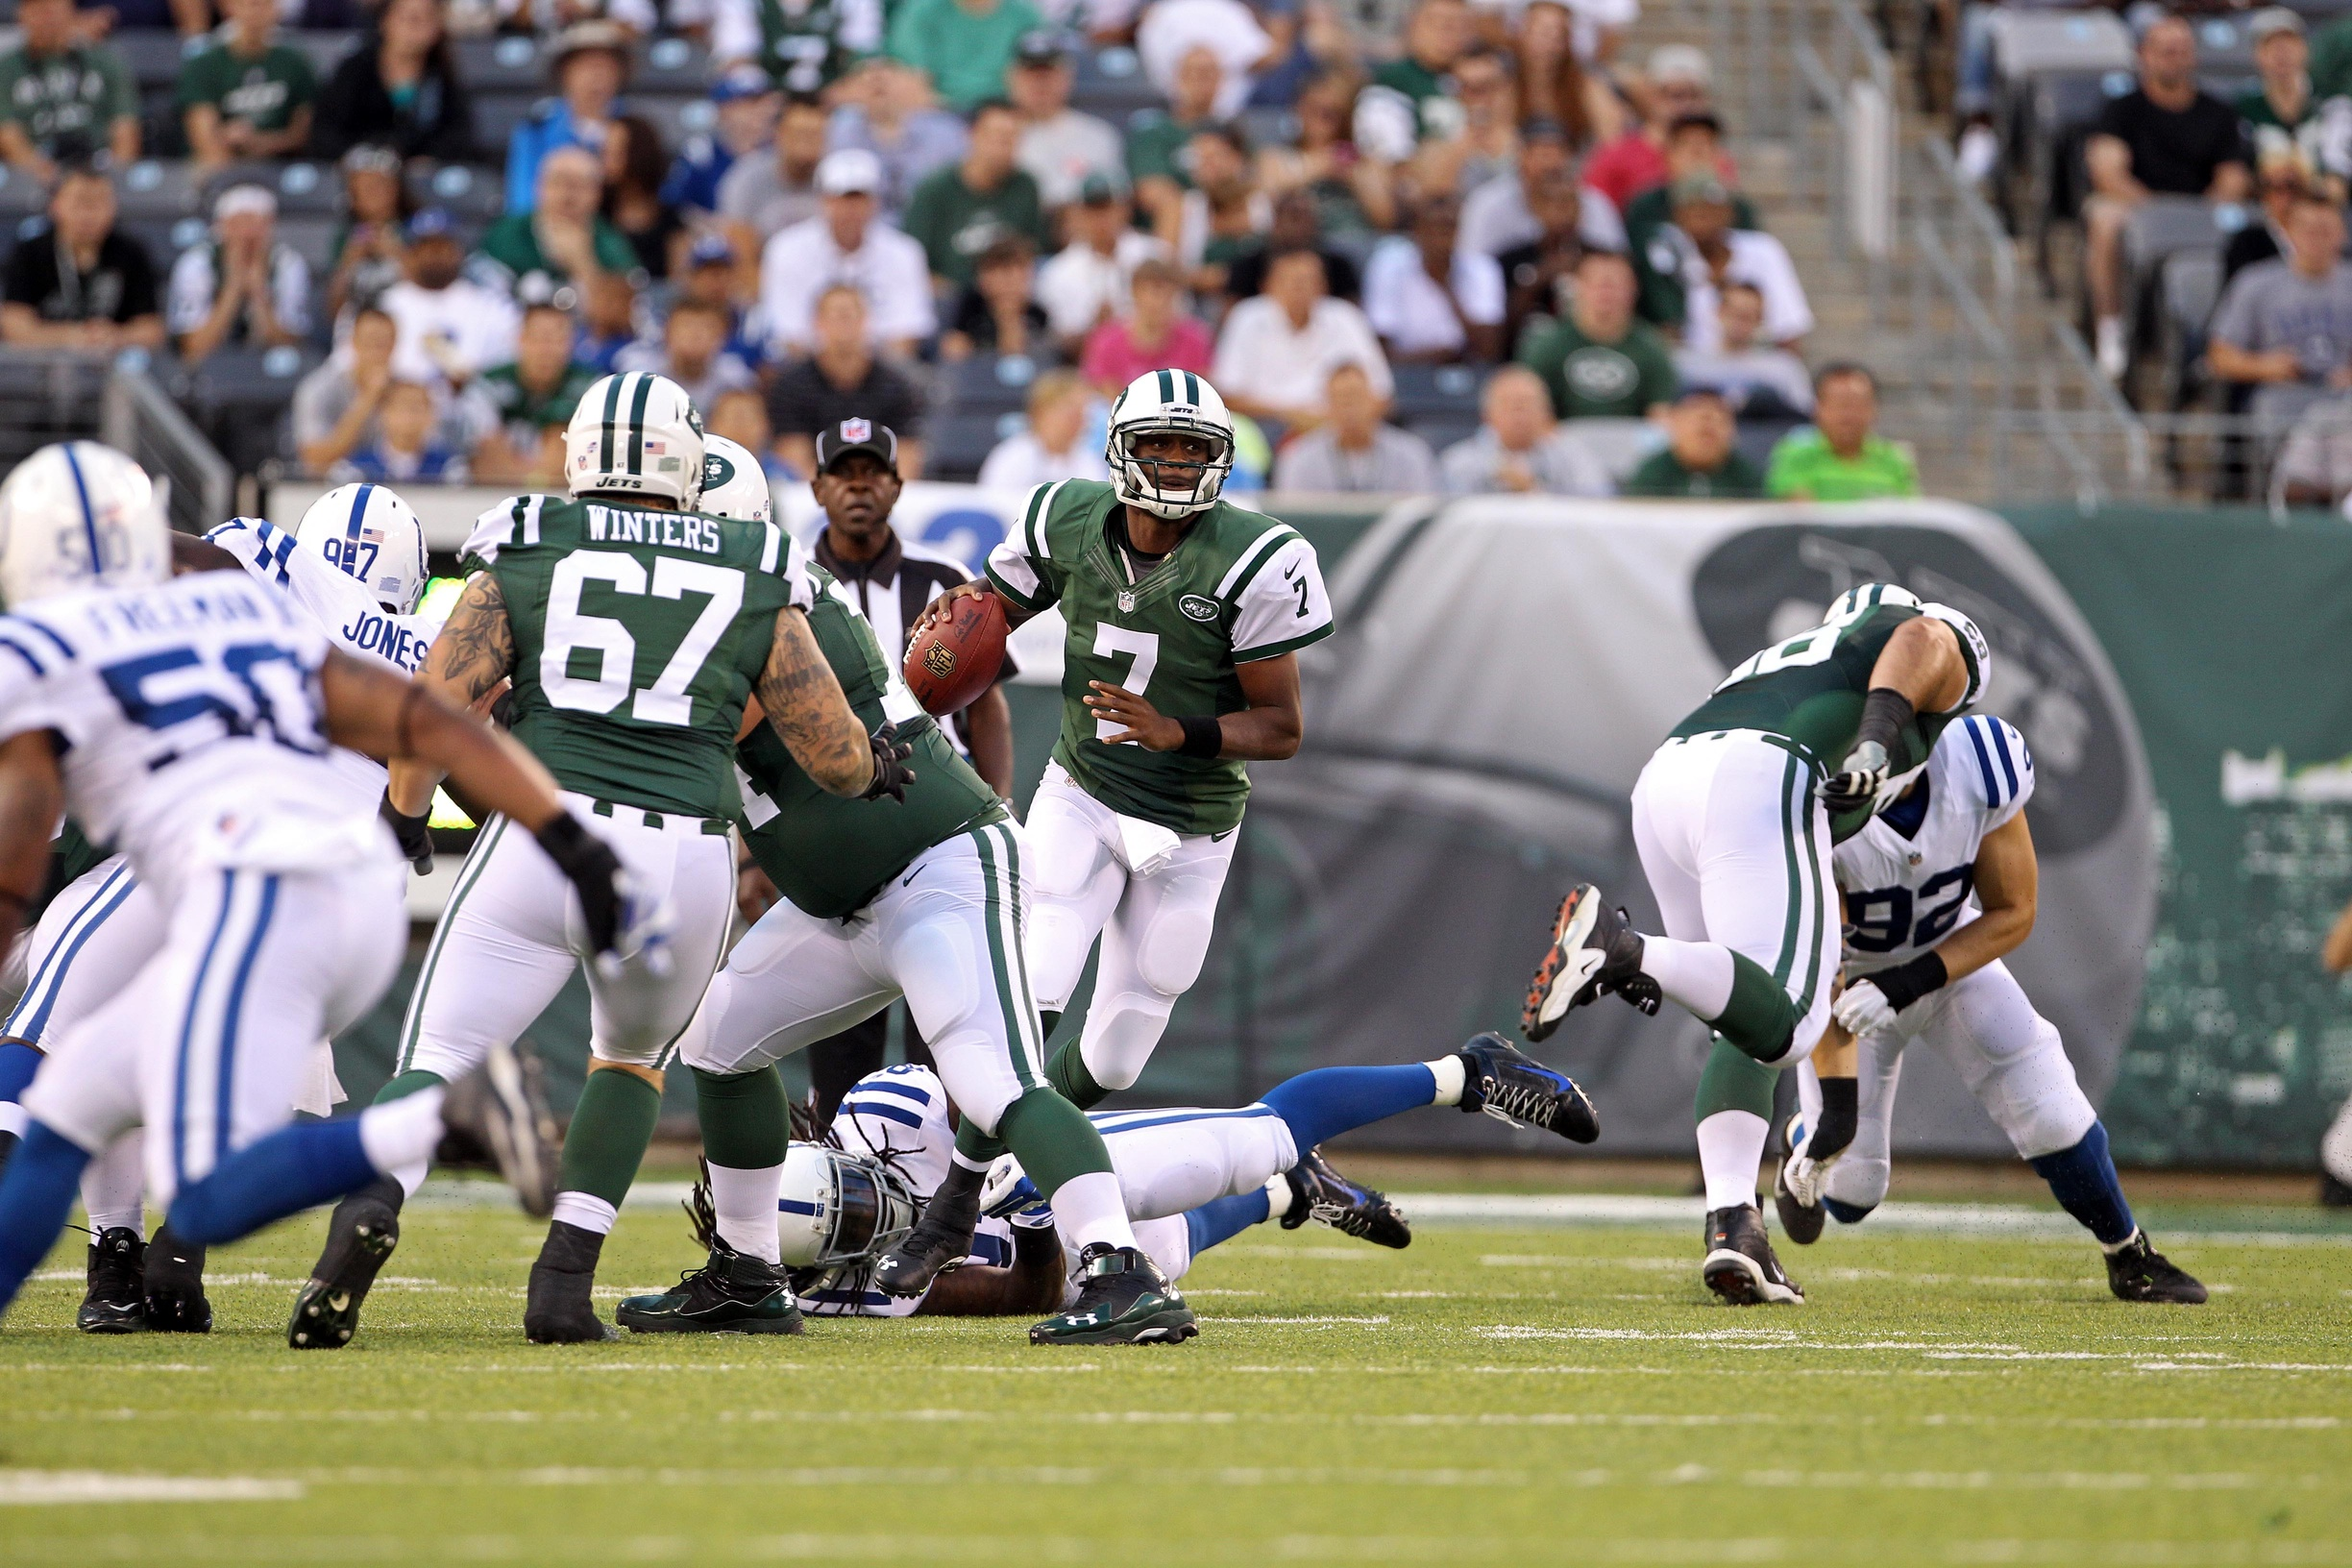 Jets Conquer Colts In First Preseason Game